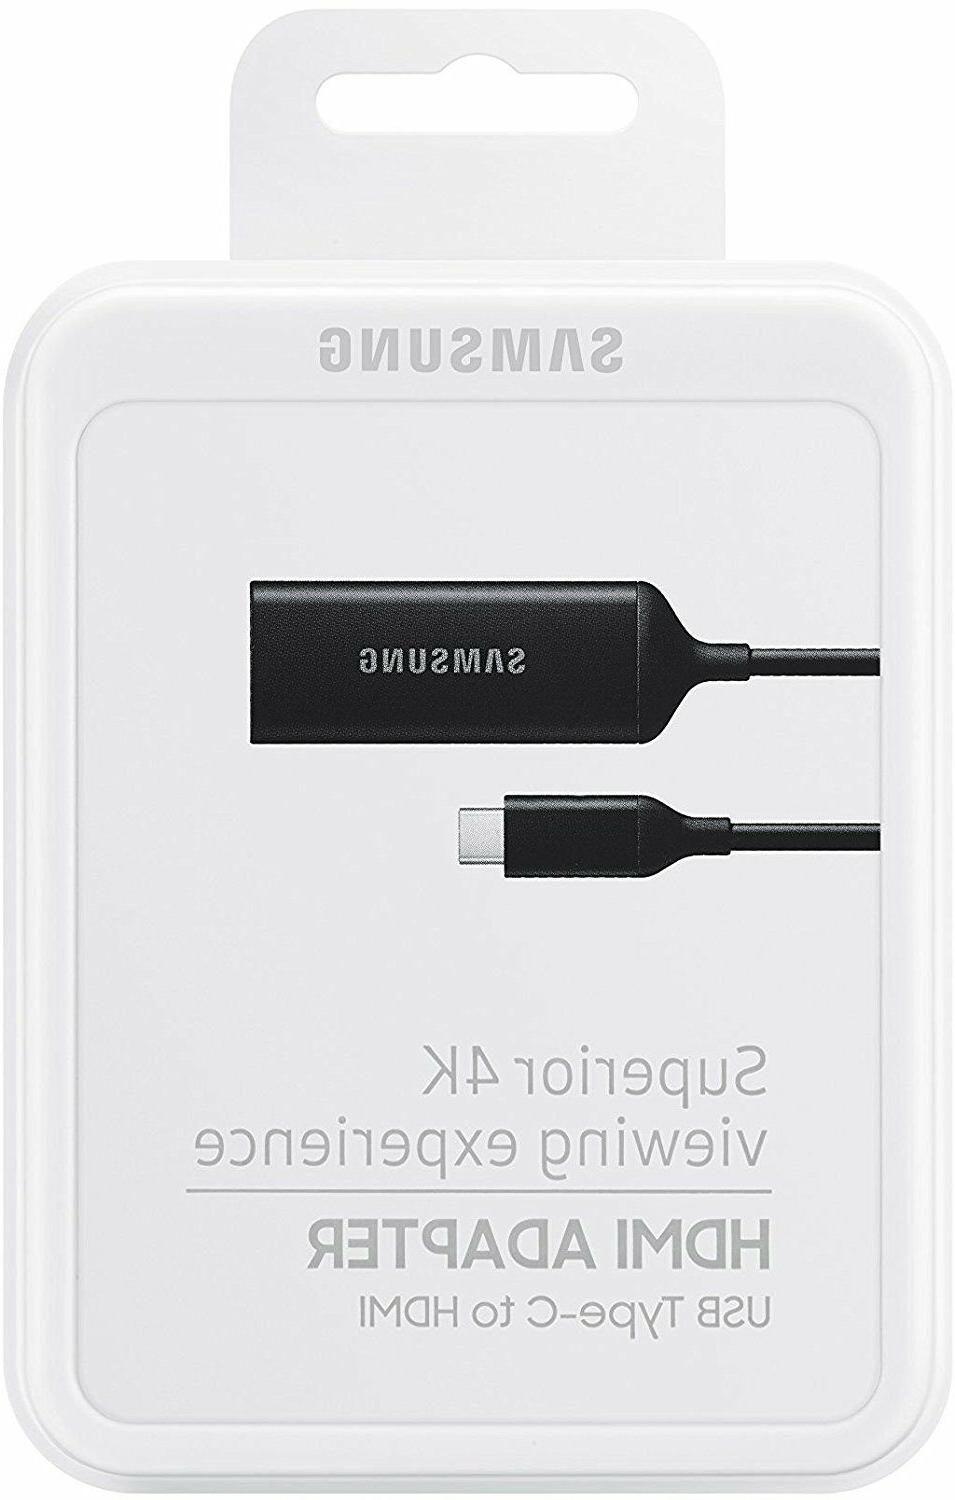 Samsung HDTV Adapter USB-C to HDMI up 4K S8/S8+/Note8/9/S9/S9+